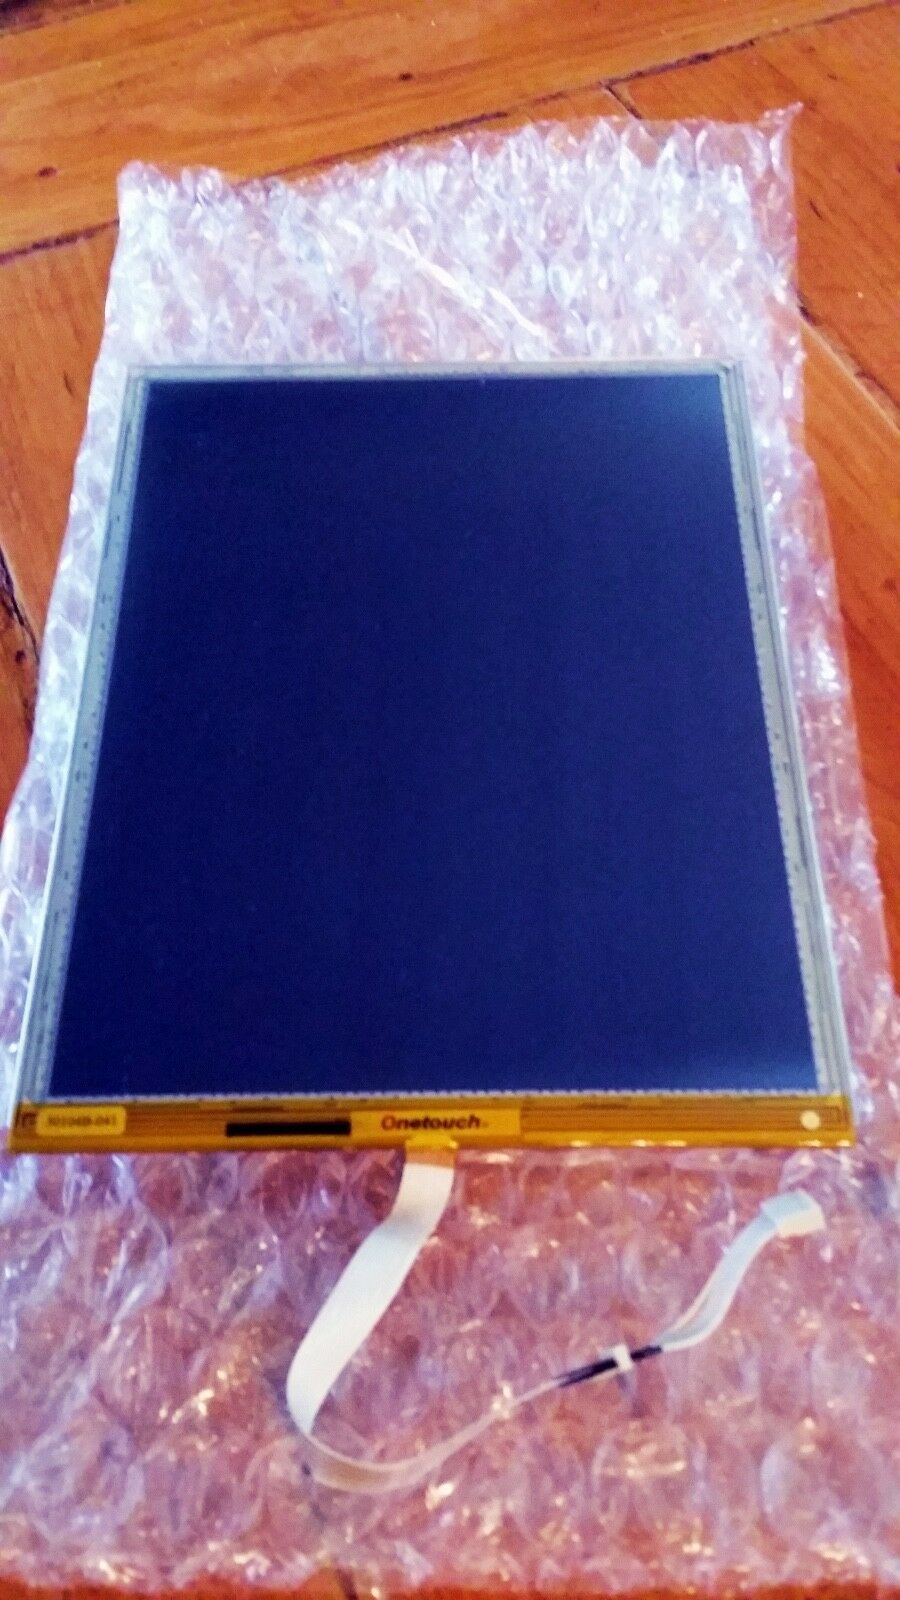 Mackie Digital X Bus DXB Screen Replacement Touch Screen